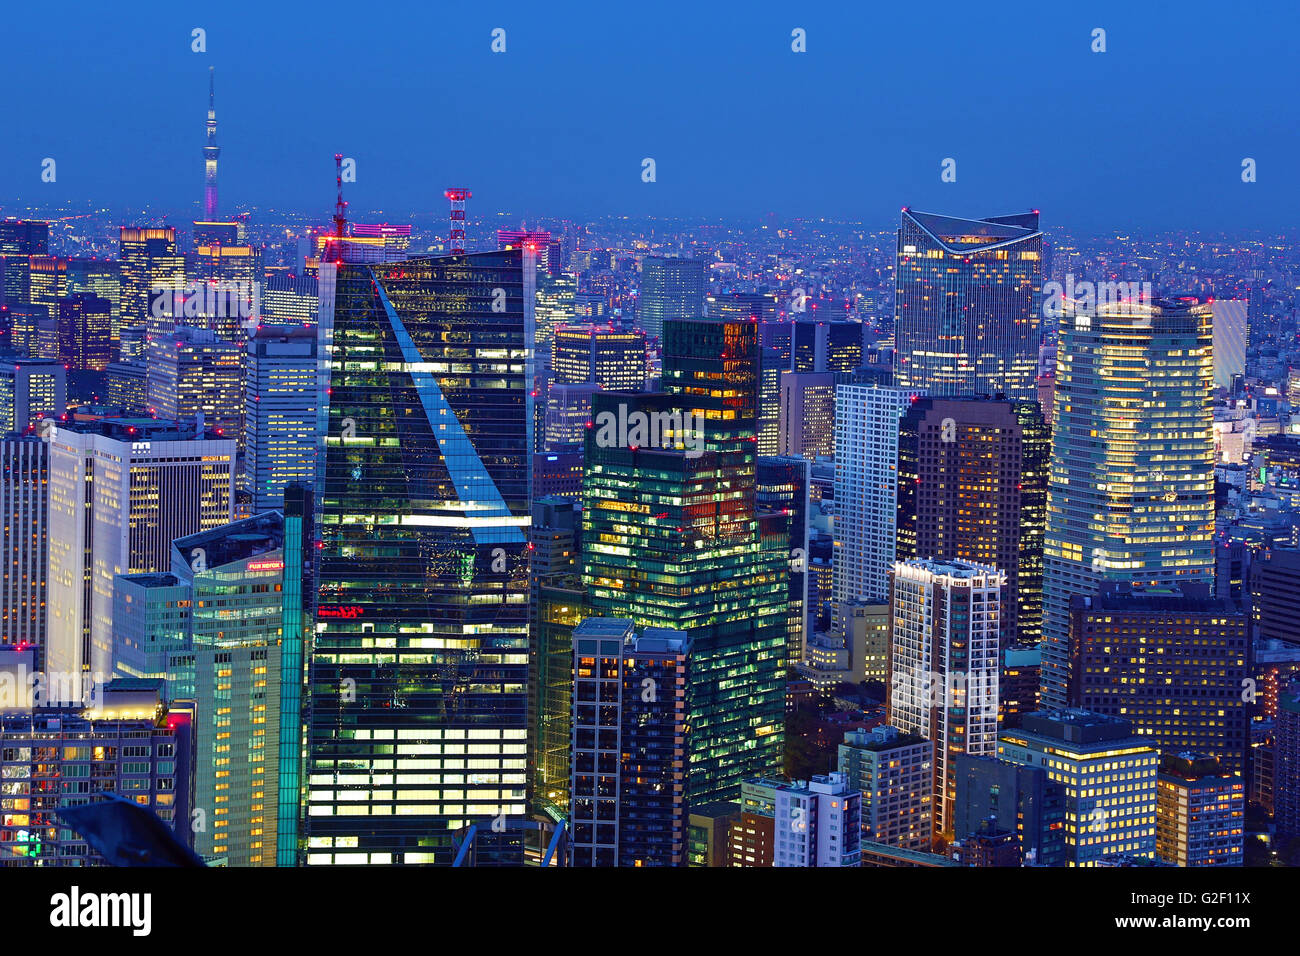 General city skyline evening view of Tokyo, Japan - Stock Image